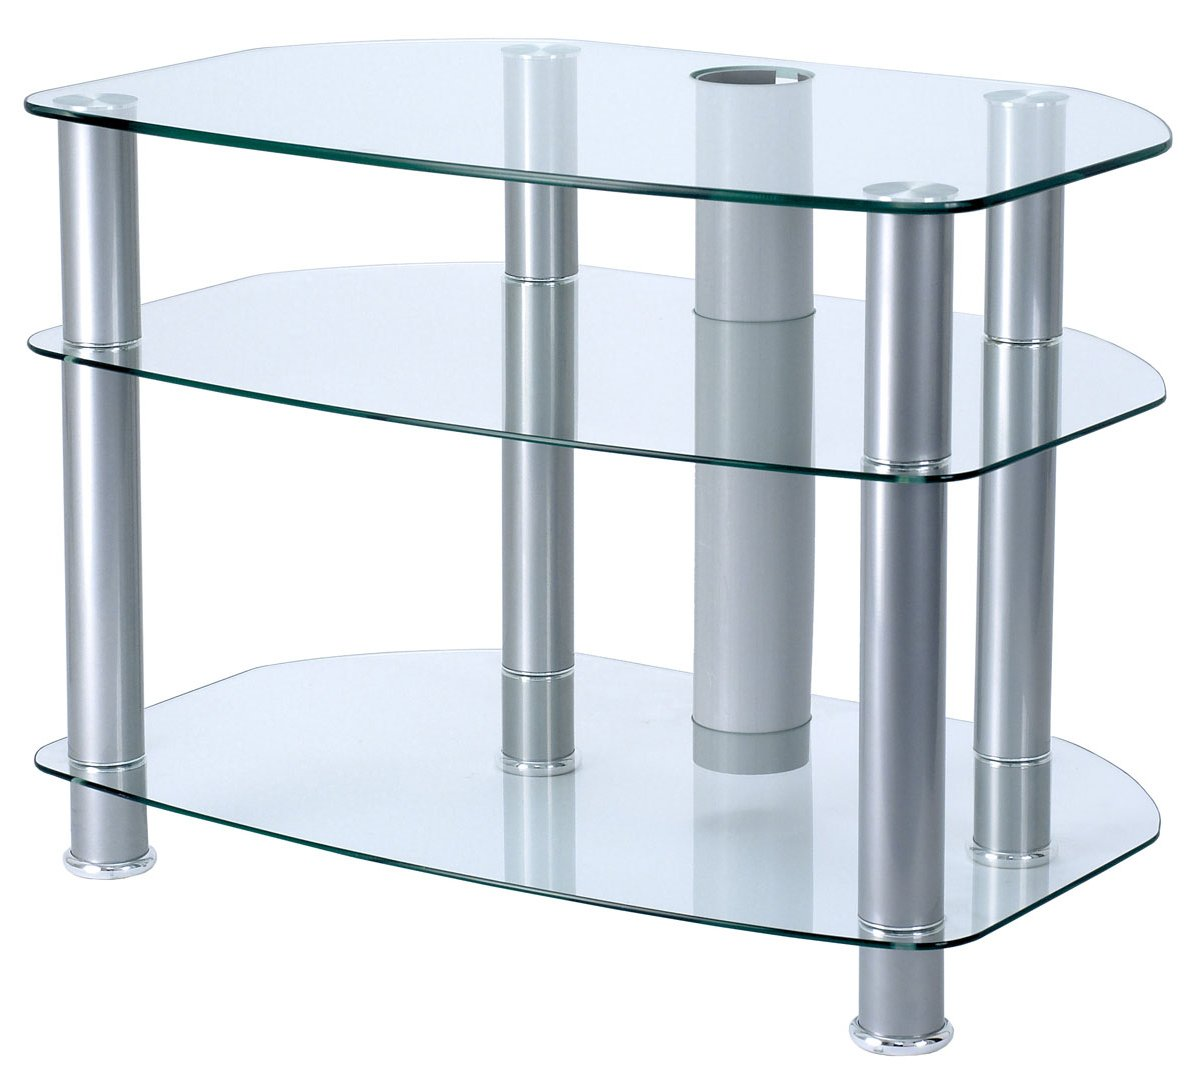 alphason clear glass tv stand for up to 32 tvs. Black Bedroom Furniture Sets. Home Design Ideas